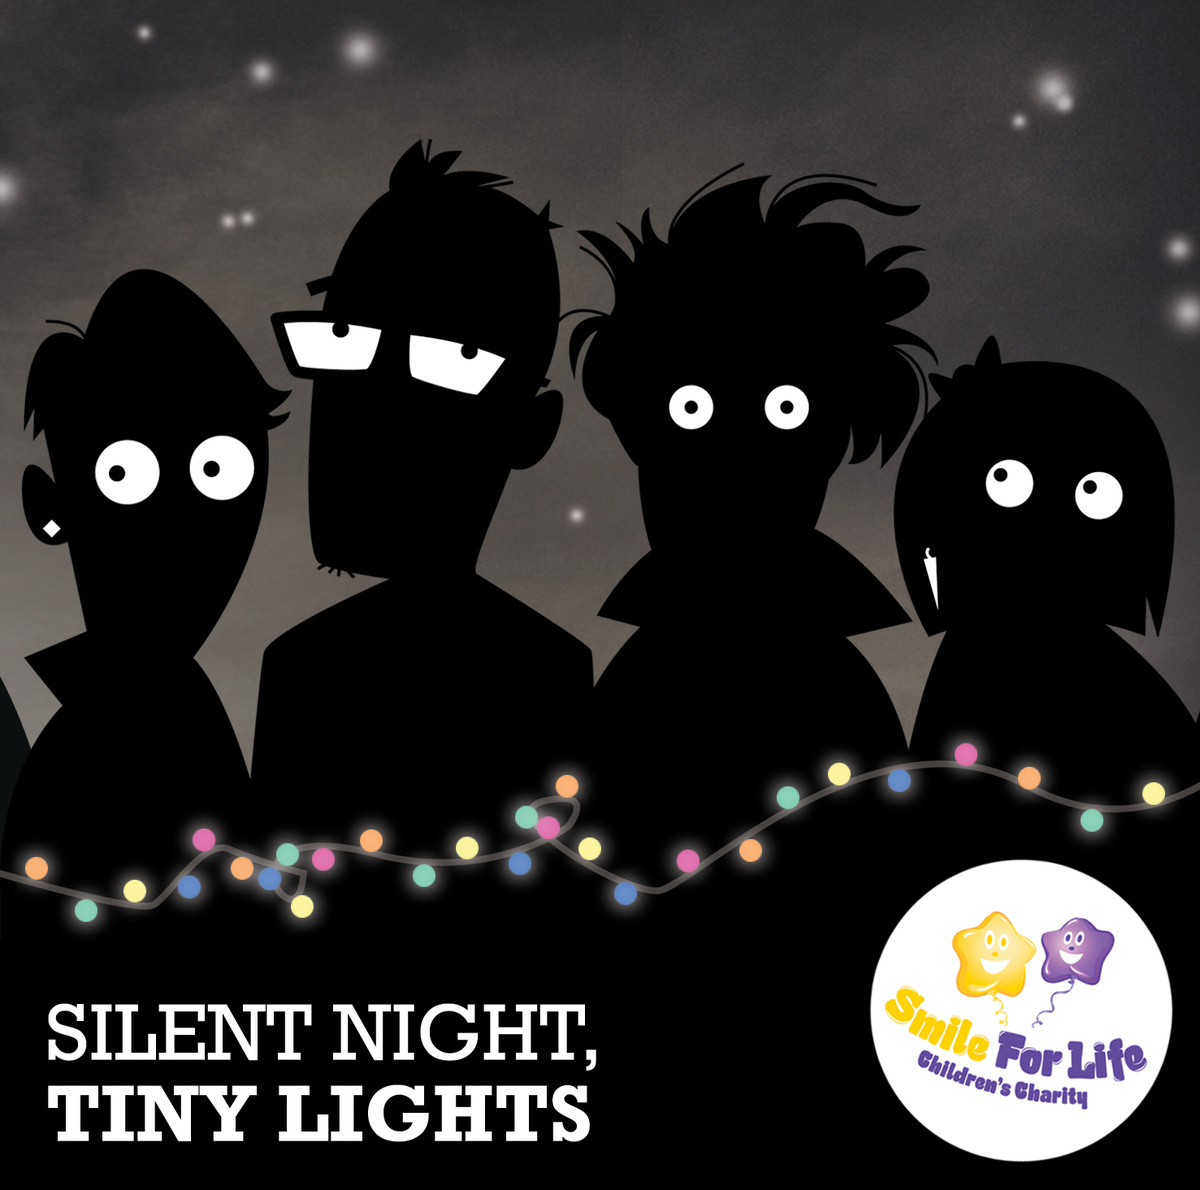 Silent Night, Tiny Lights